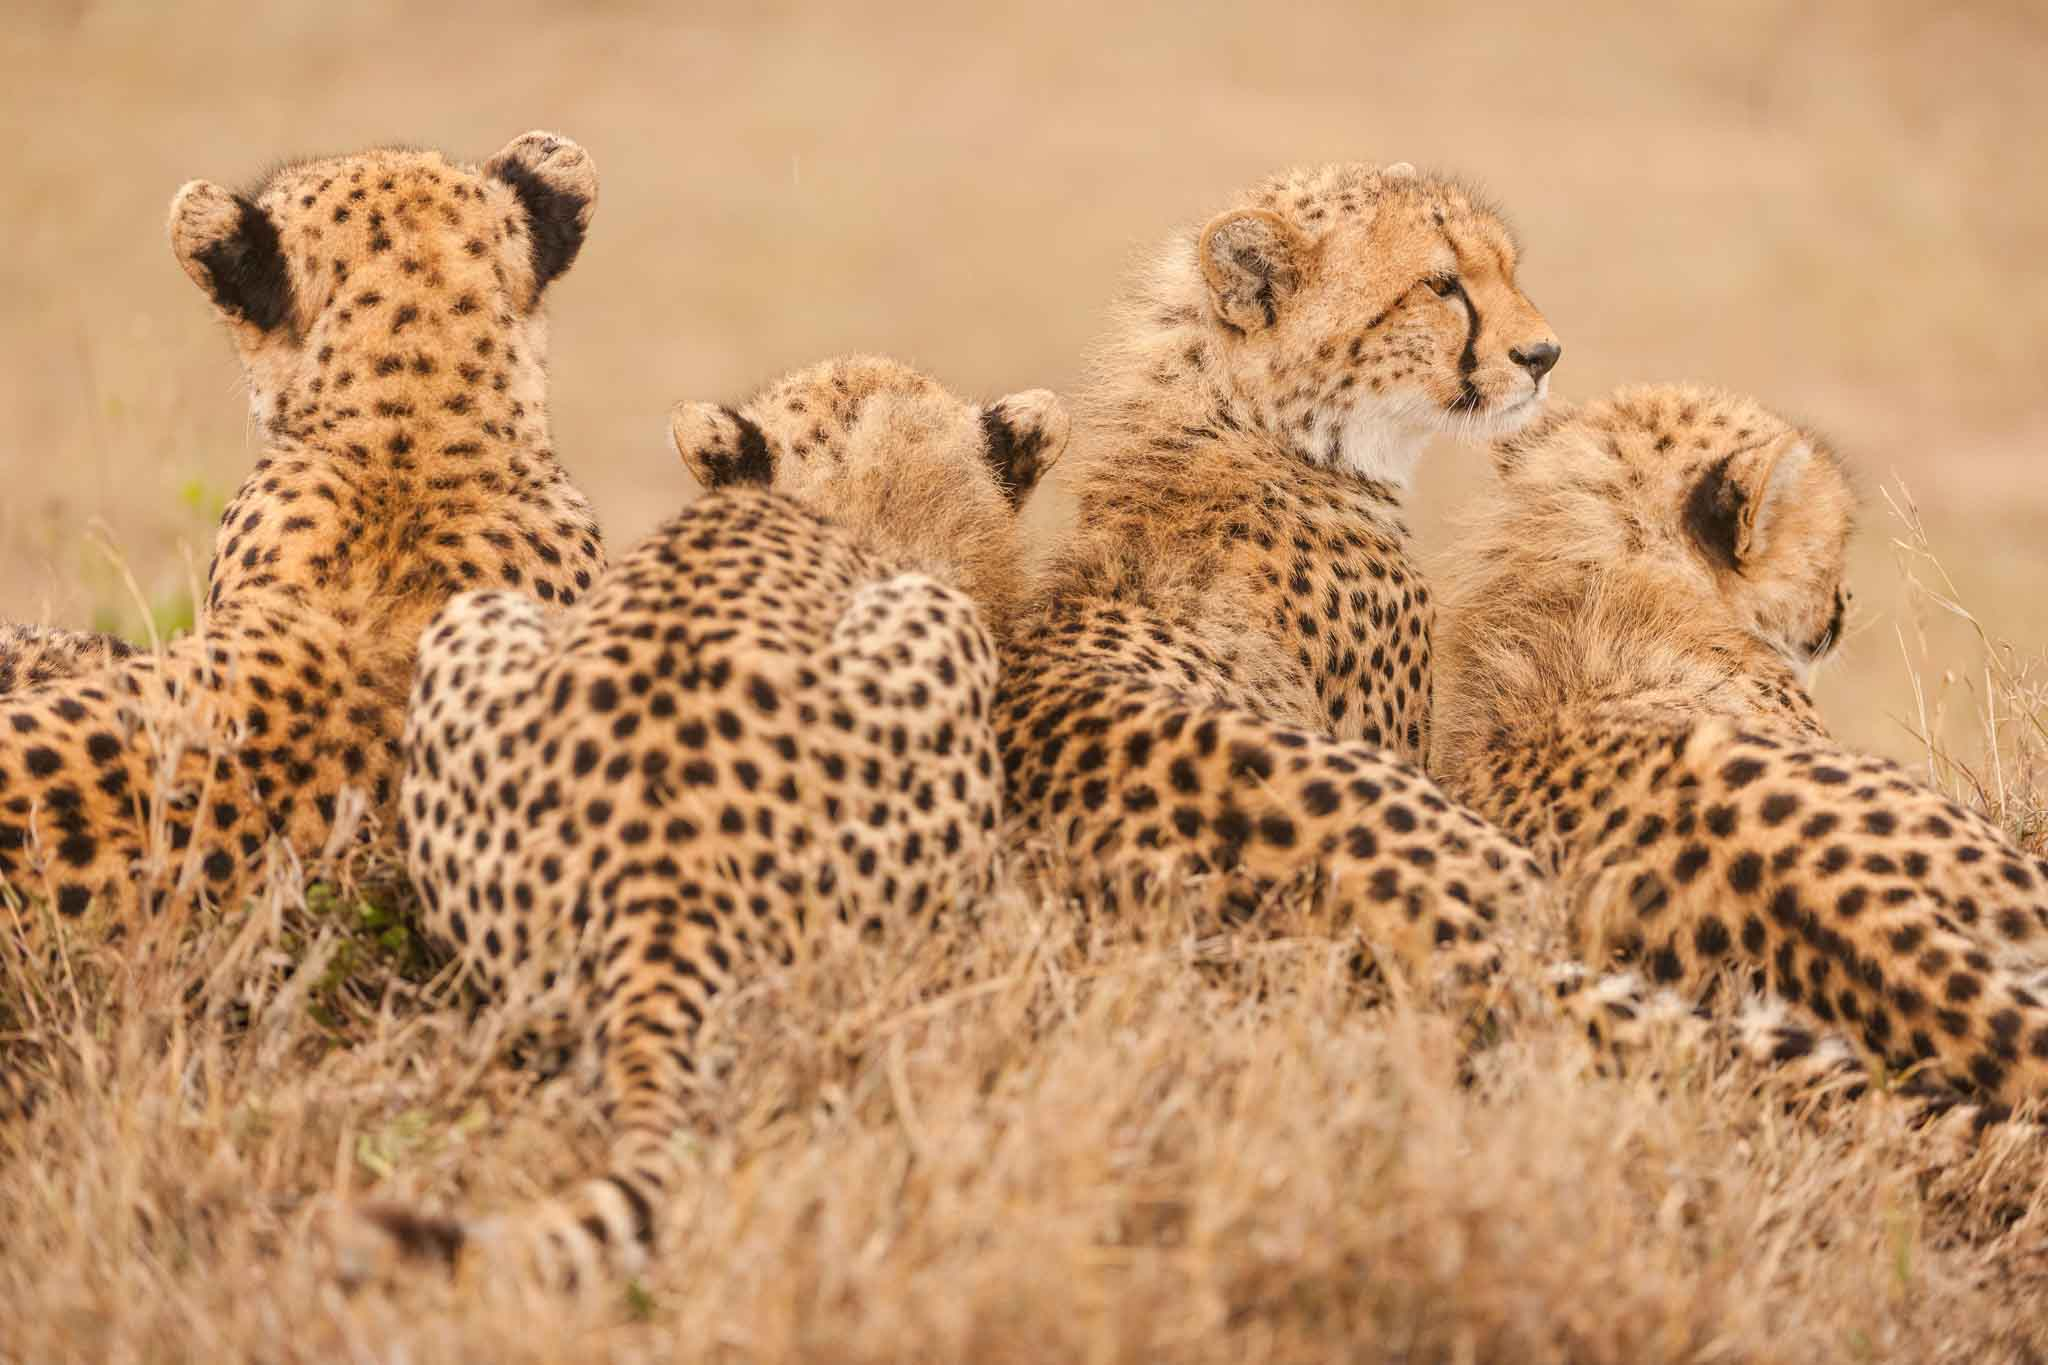 Group of cheetah back side photos